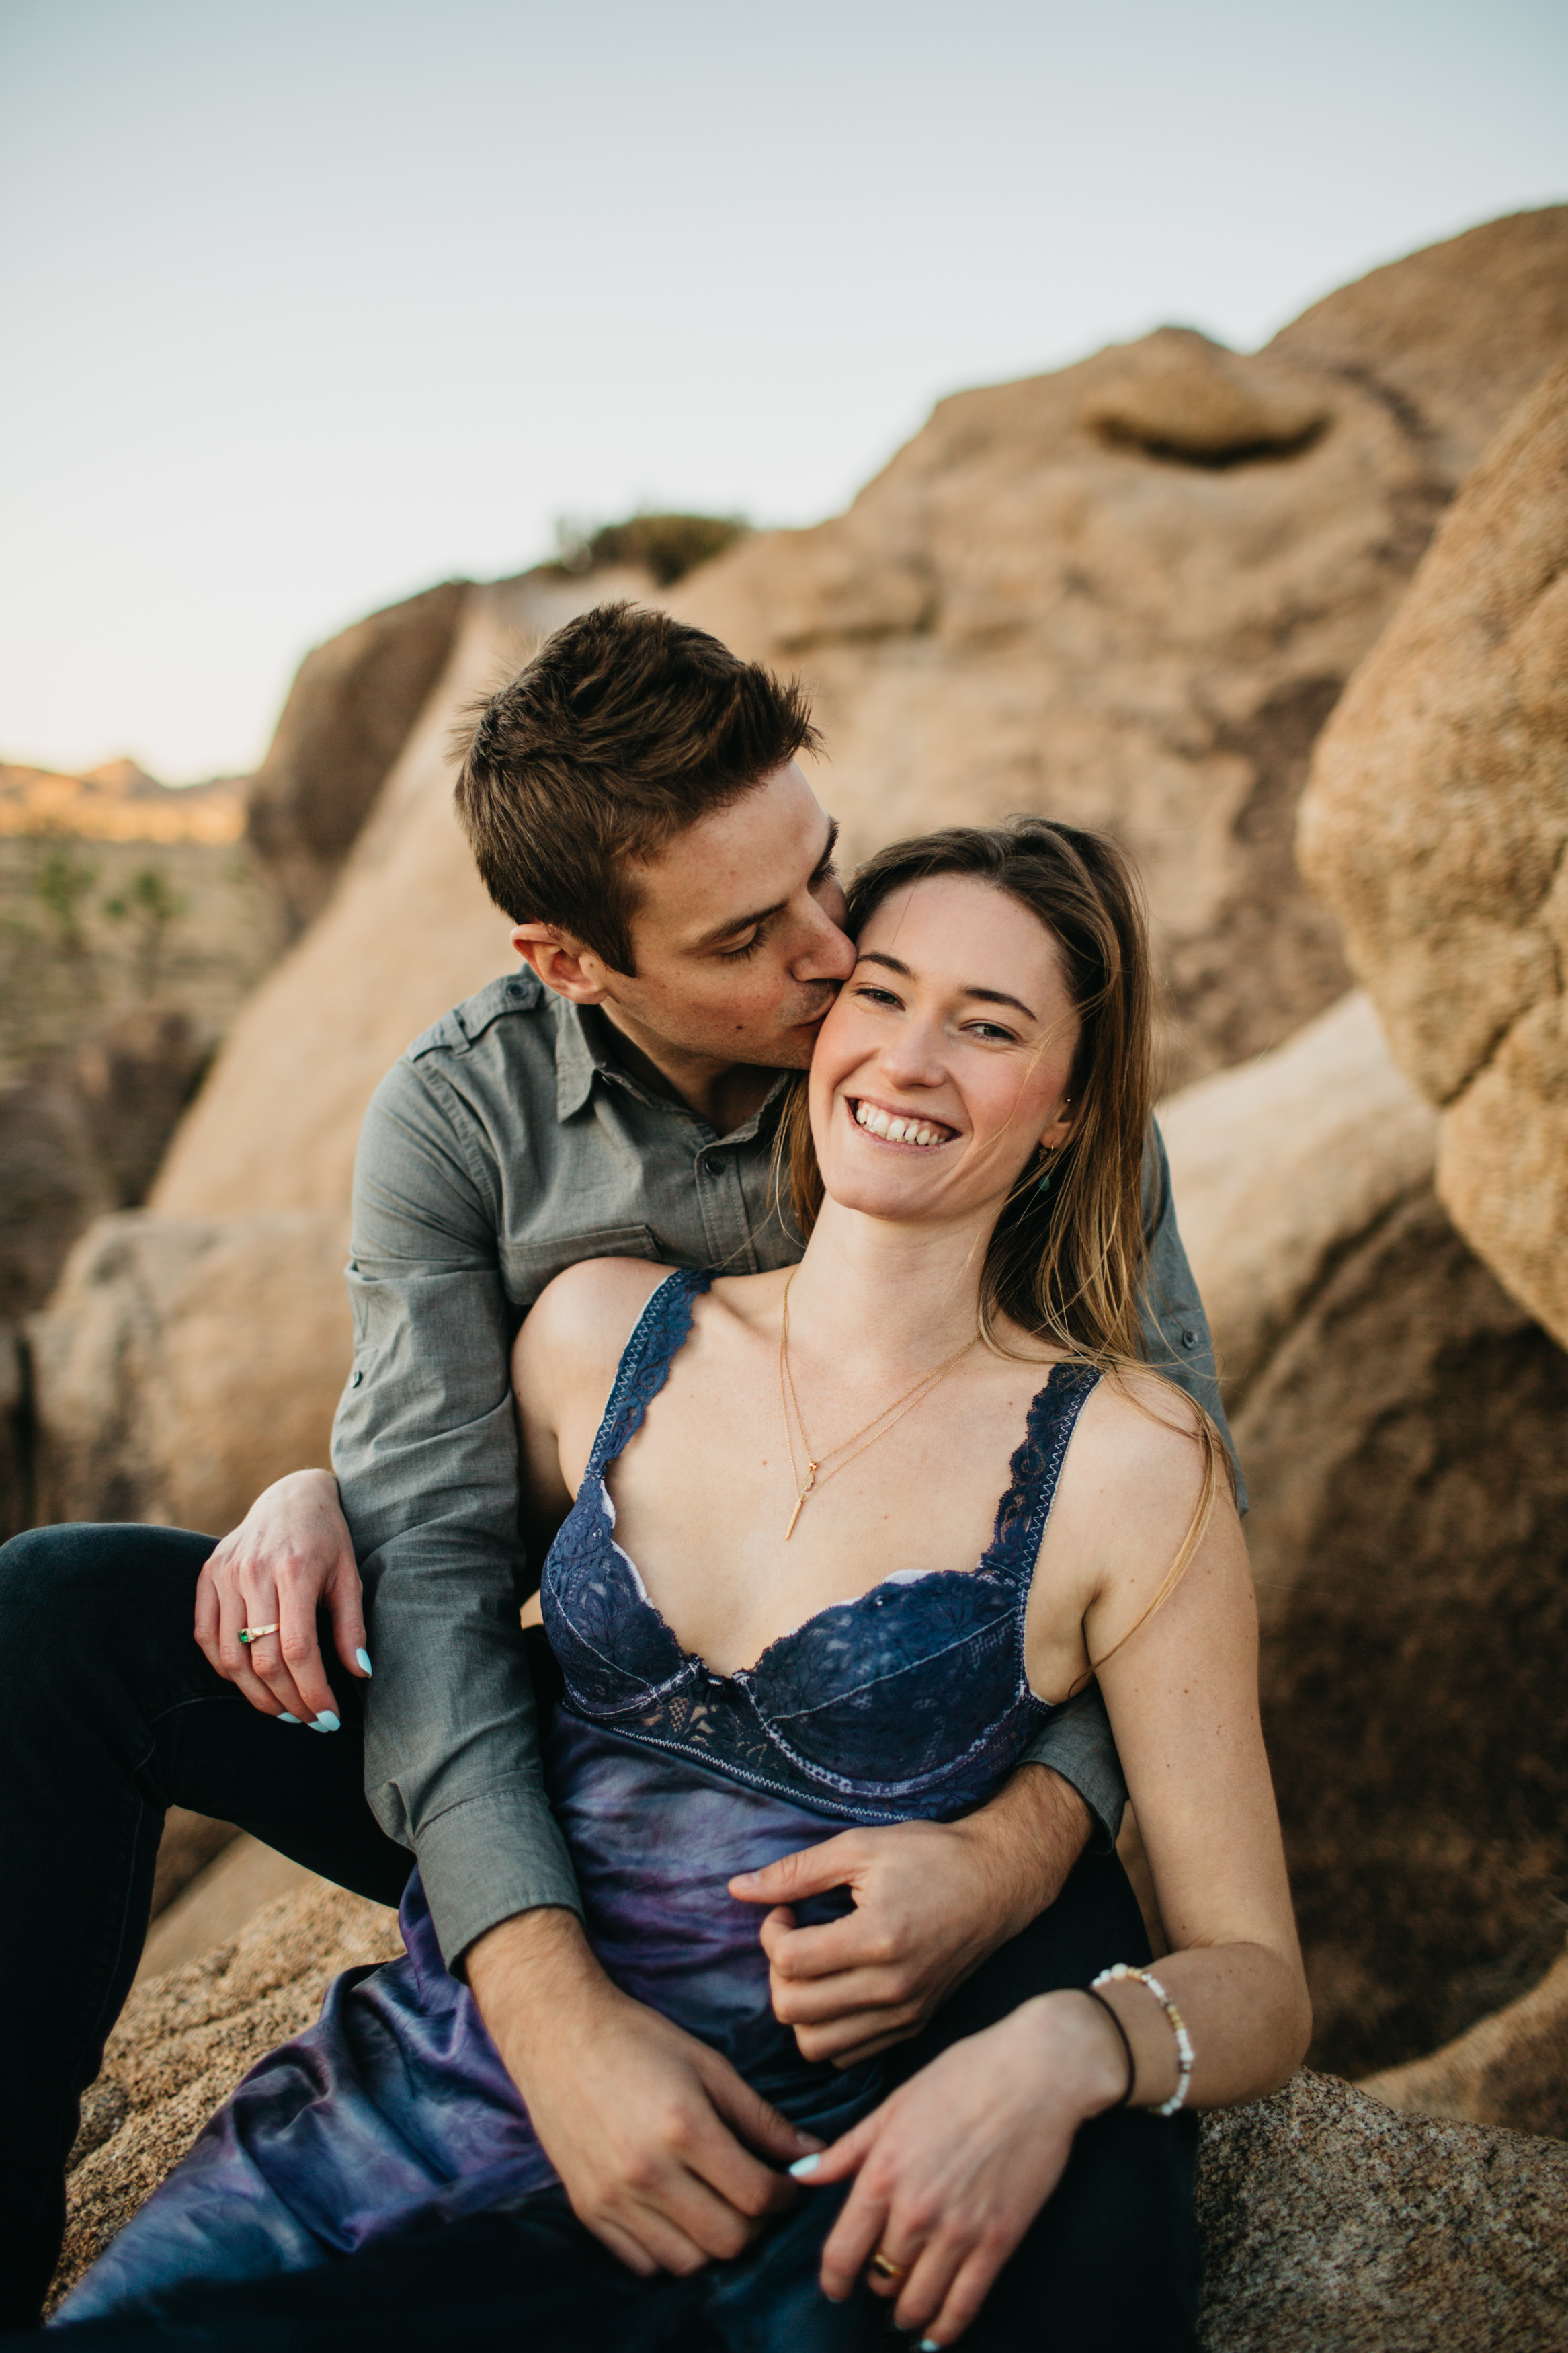 Joshua Tree National Park Elopement Love Engagement Martina Micko Photo